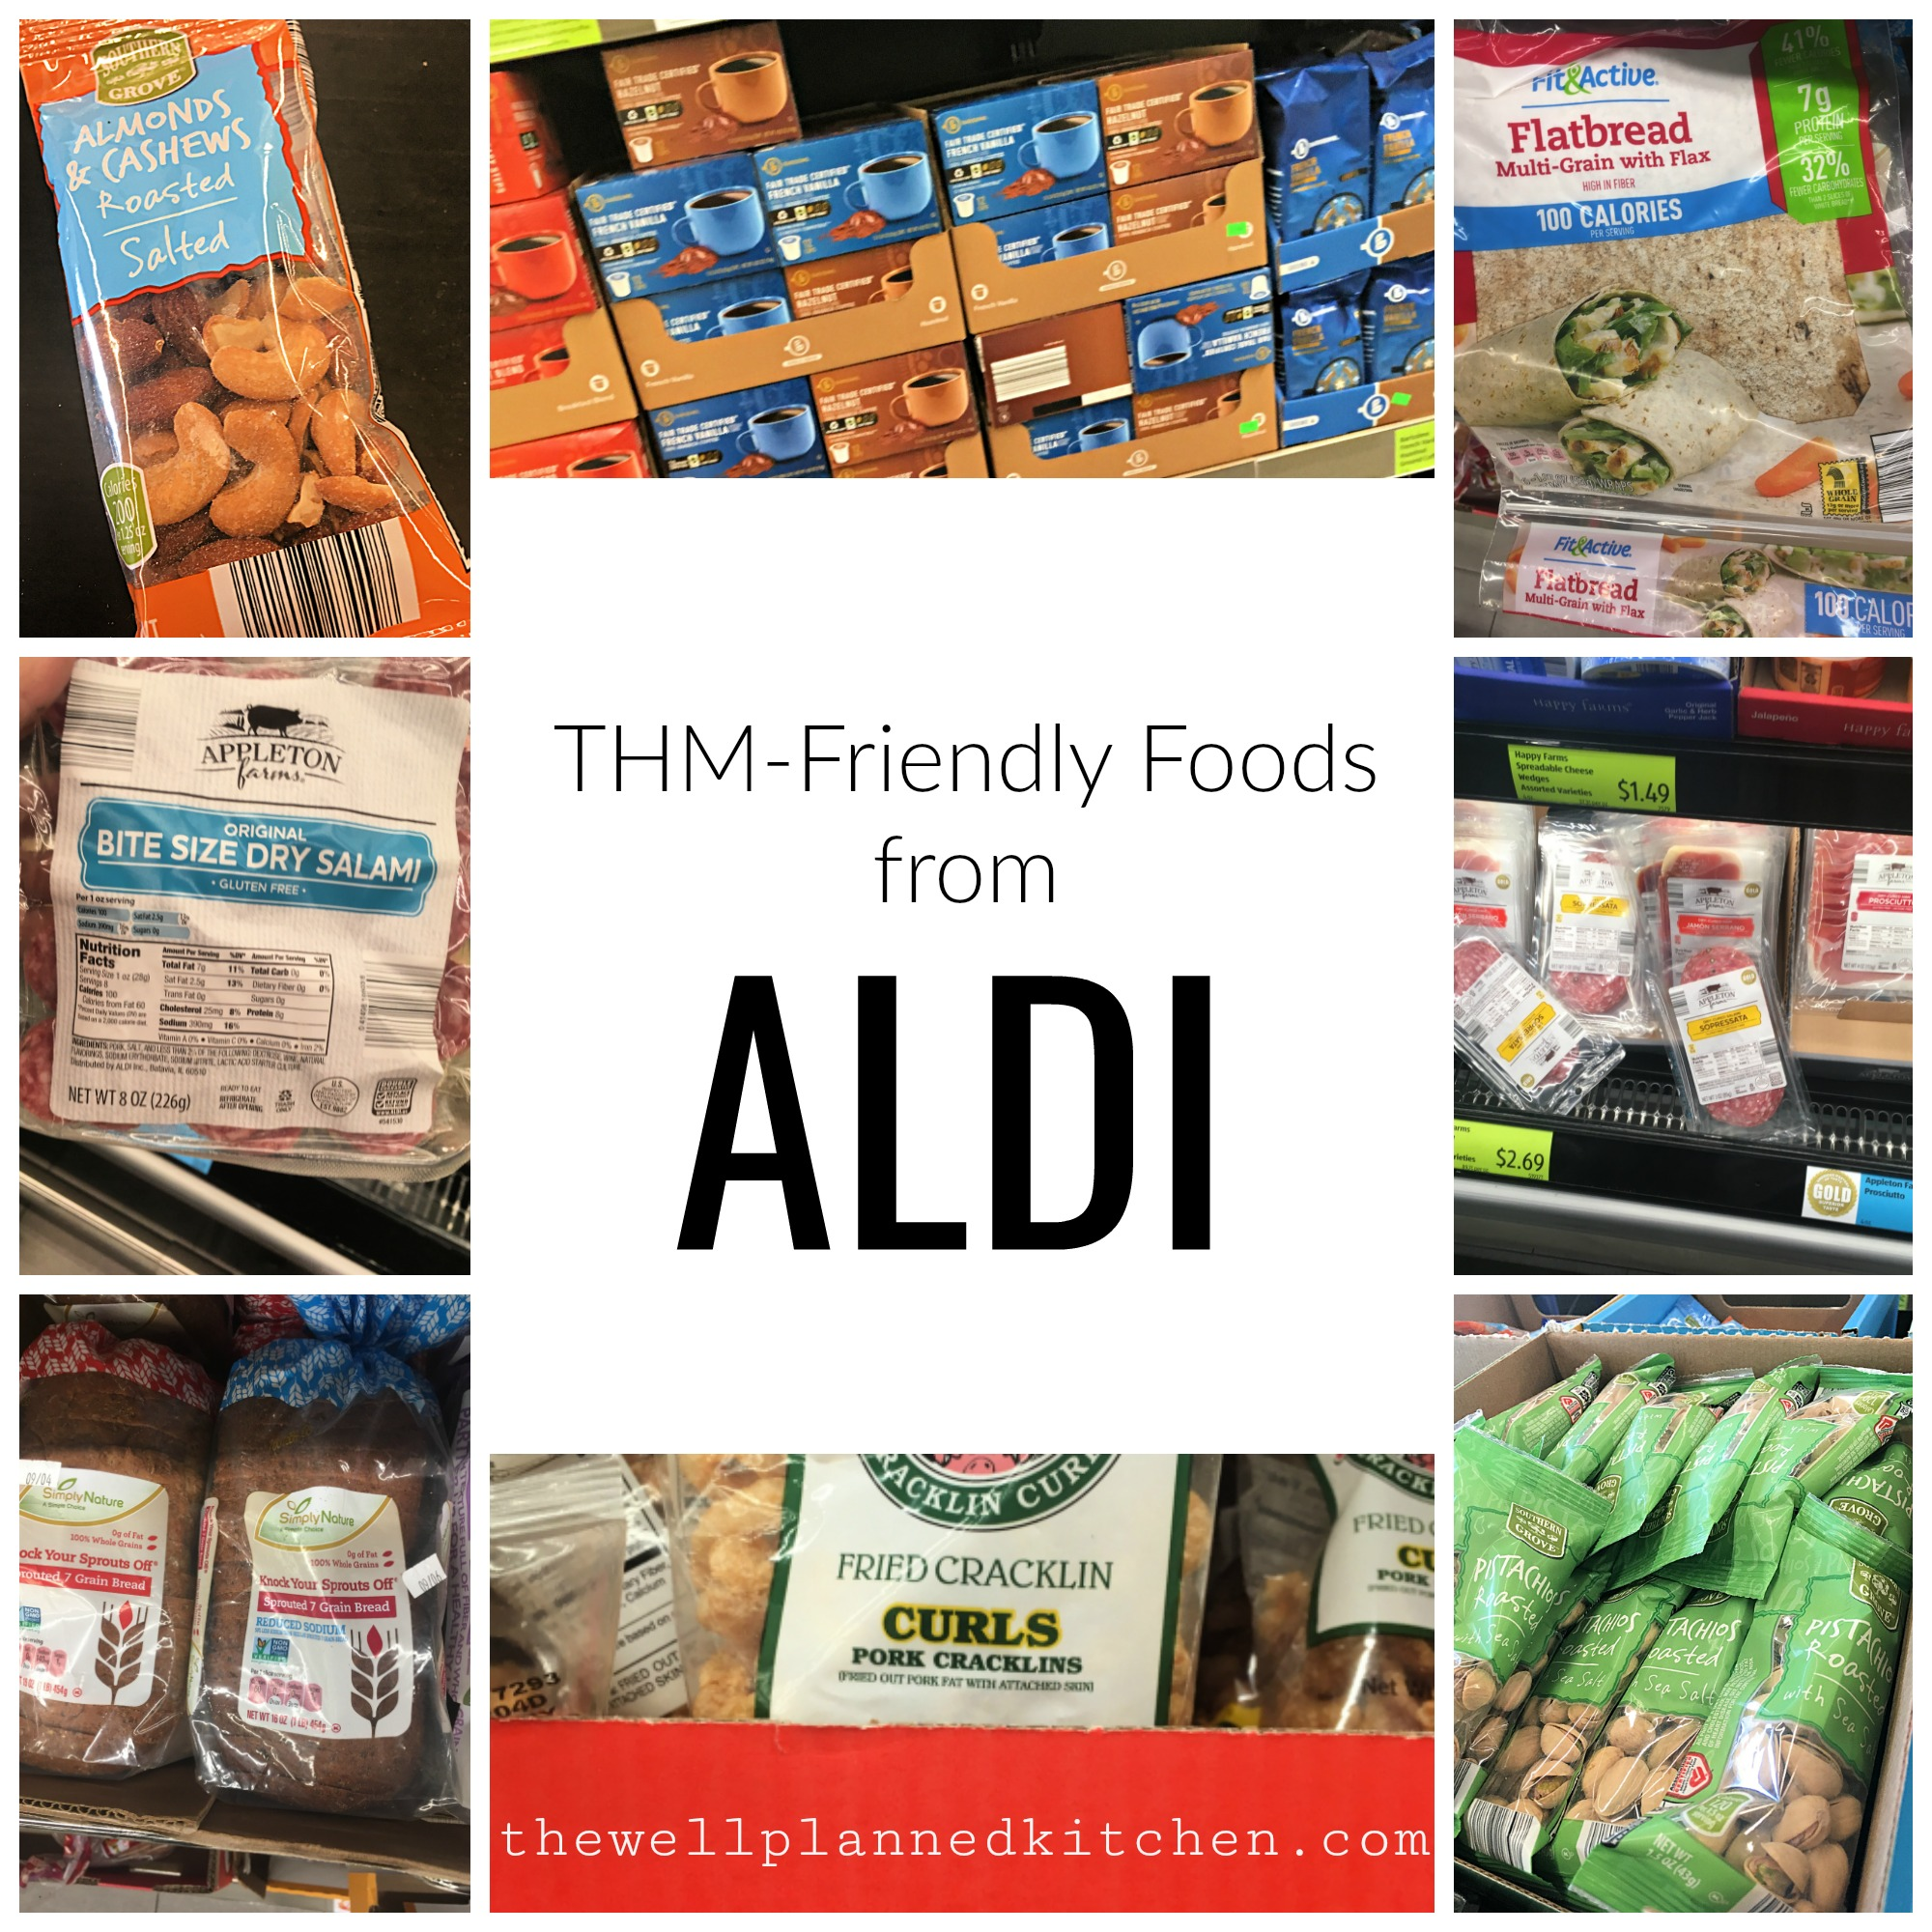 Shopping at Aldi for THM